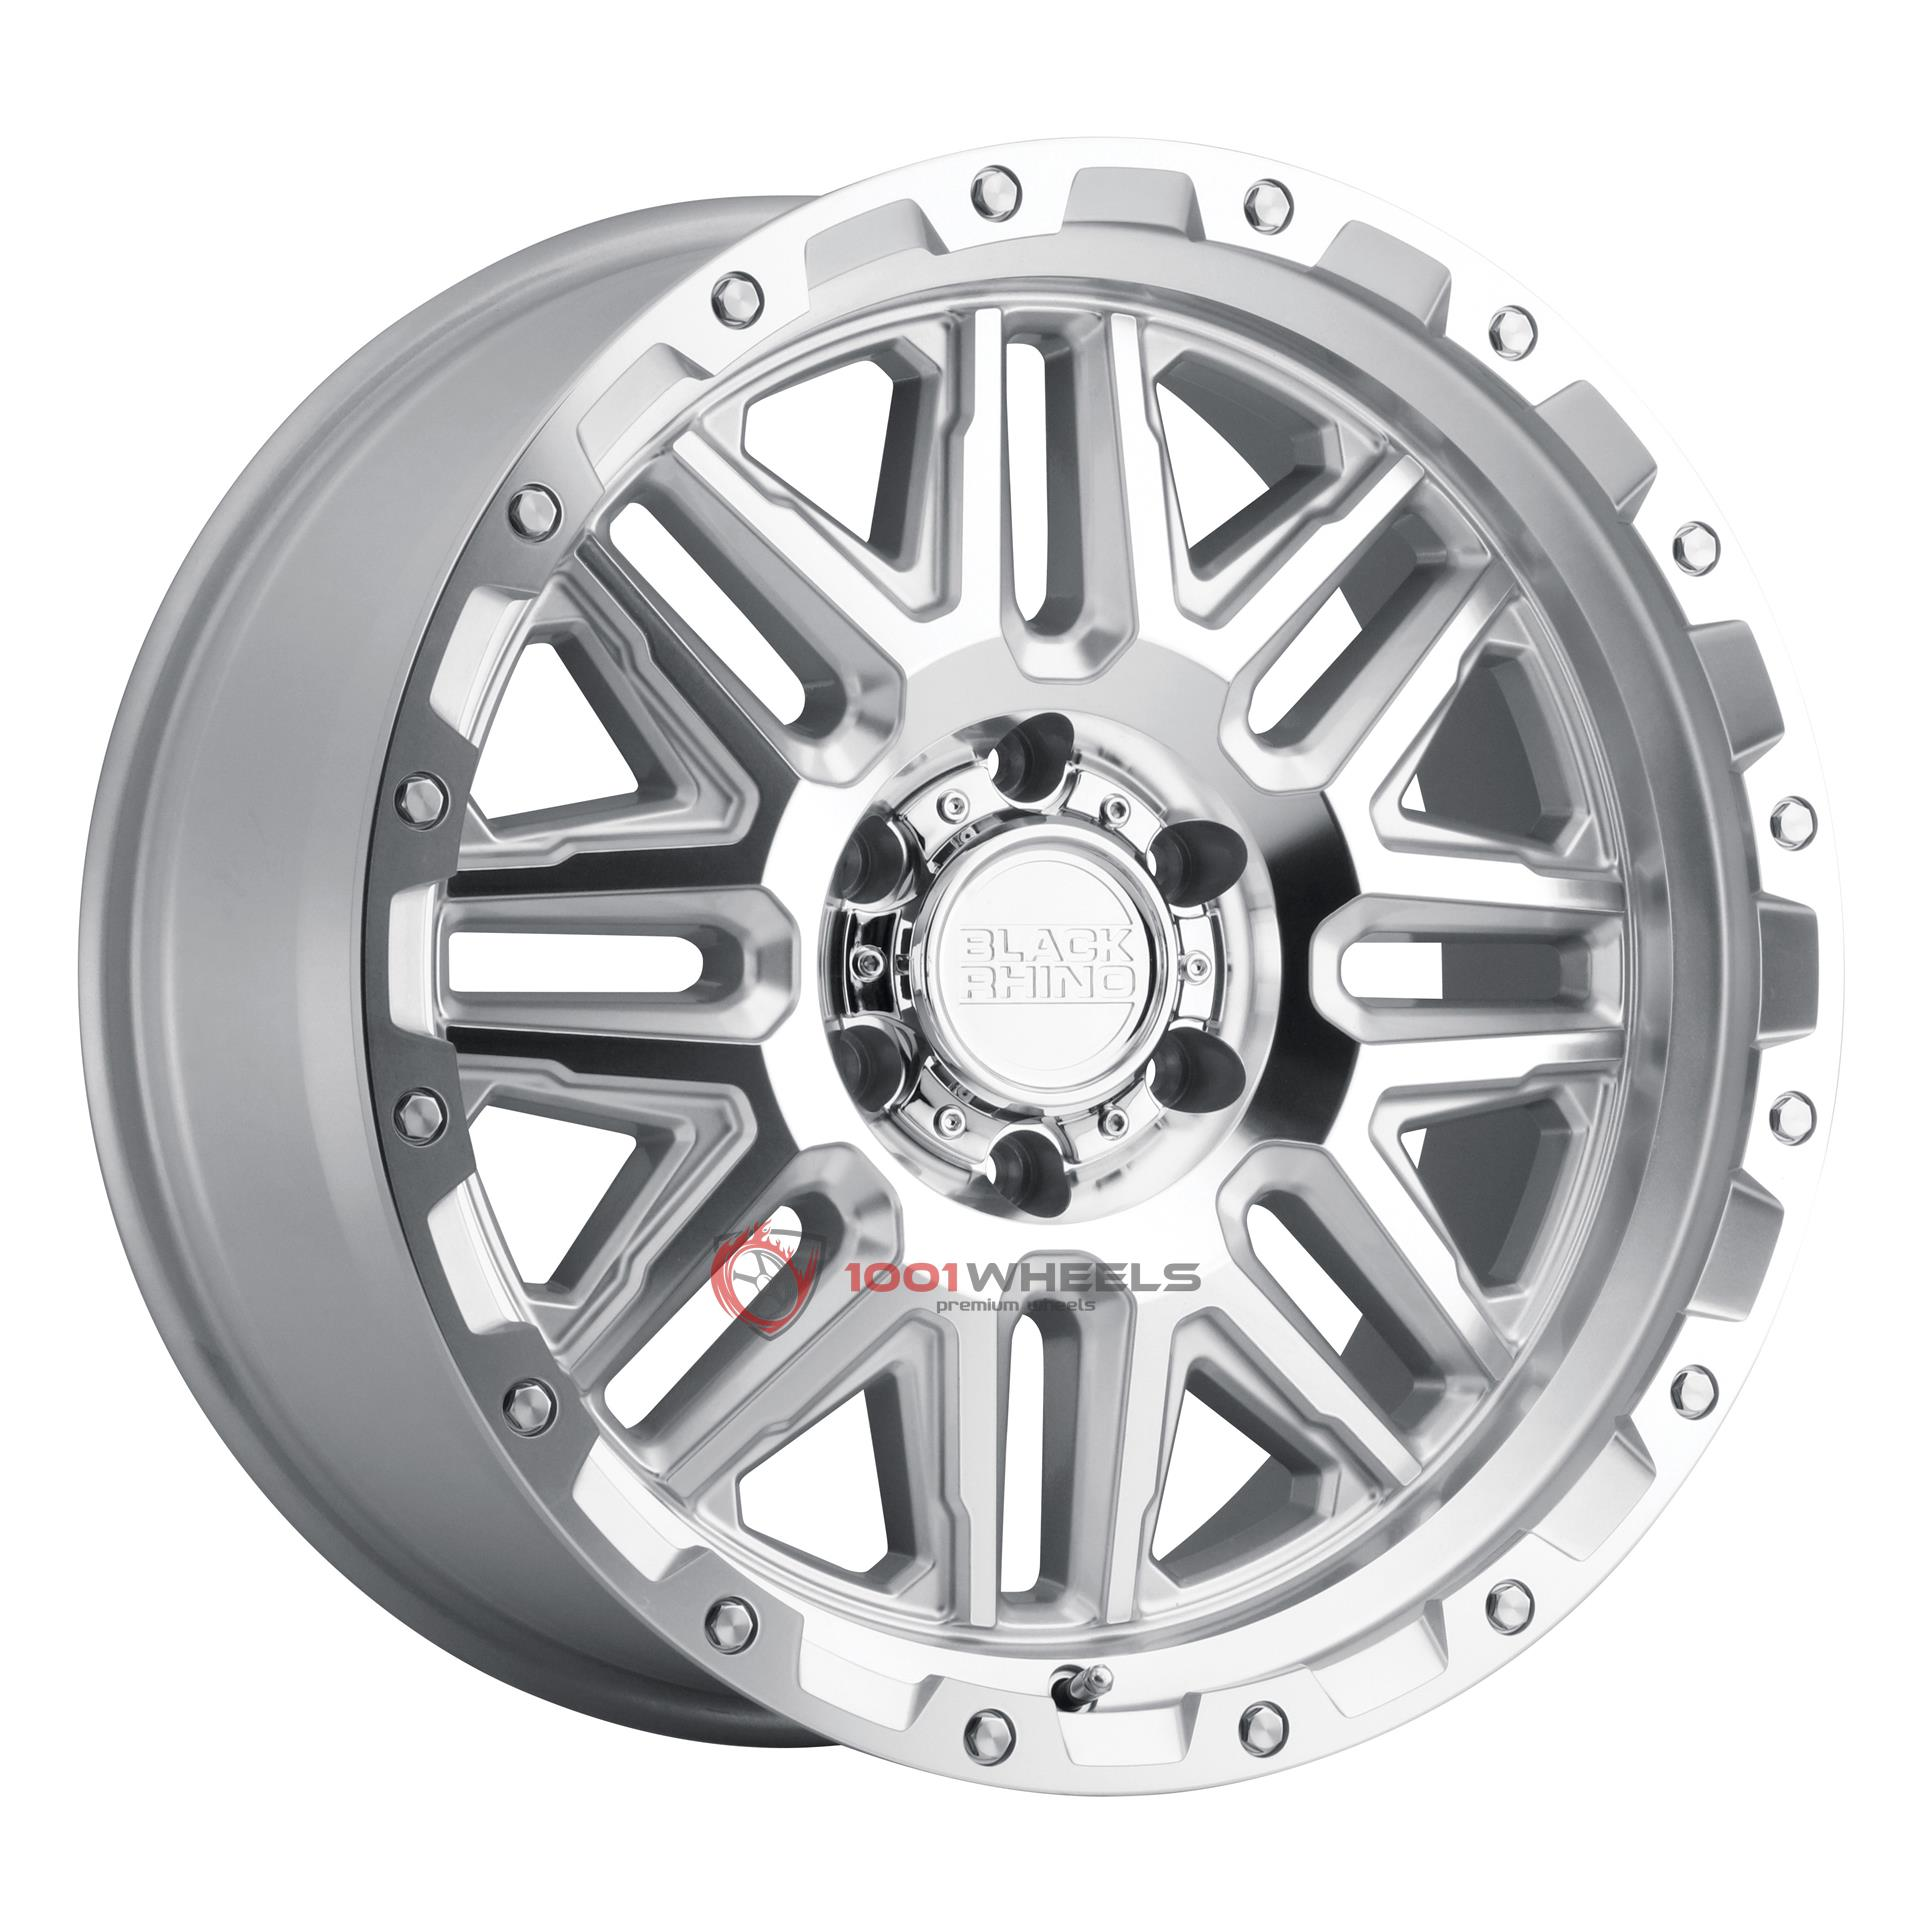 BLACK RHINO ALAMO silver-wmirror-face-and-stainless-bolts